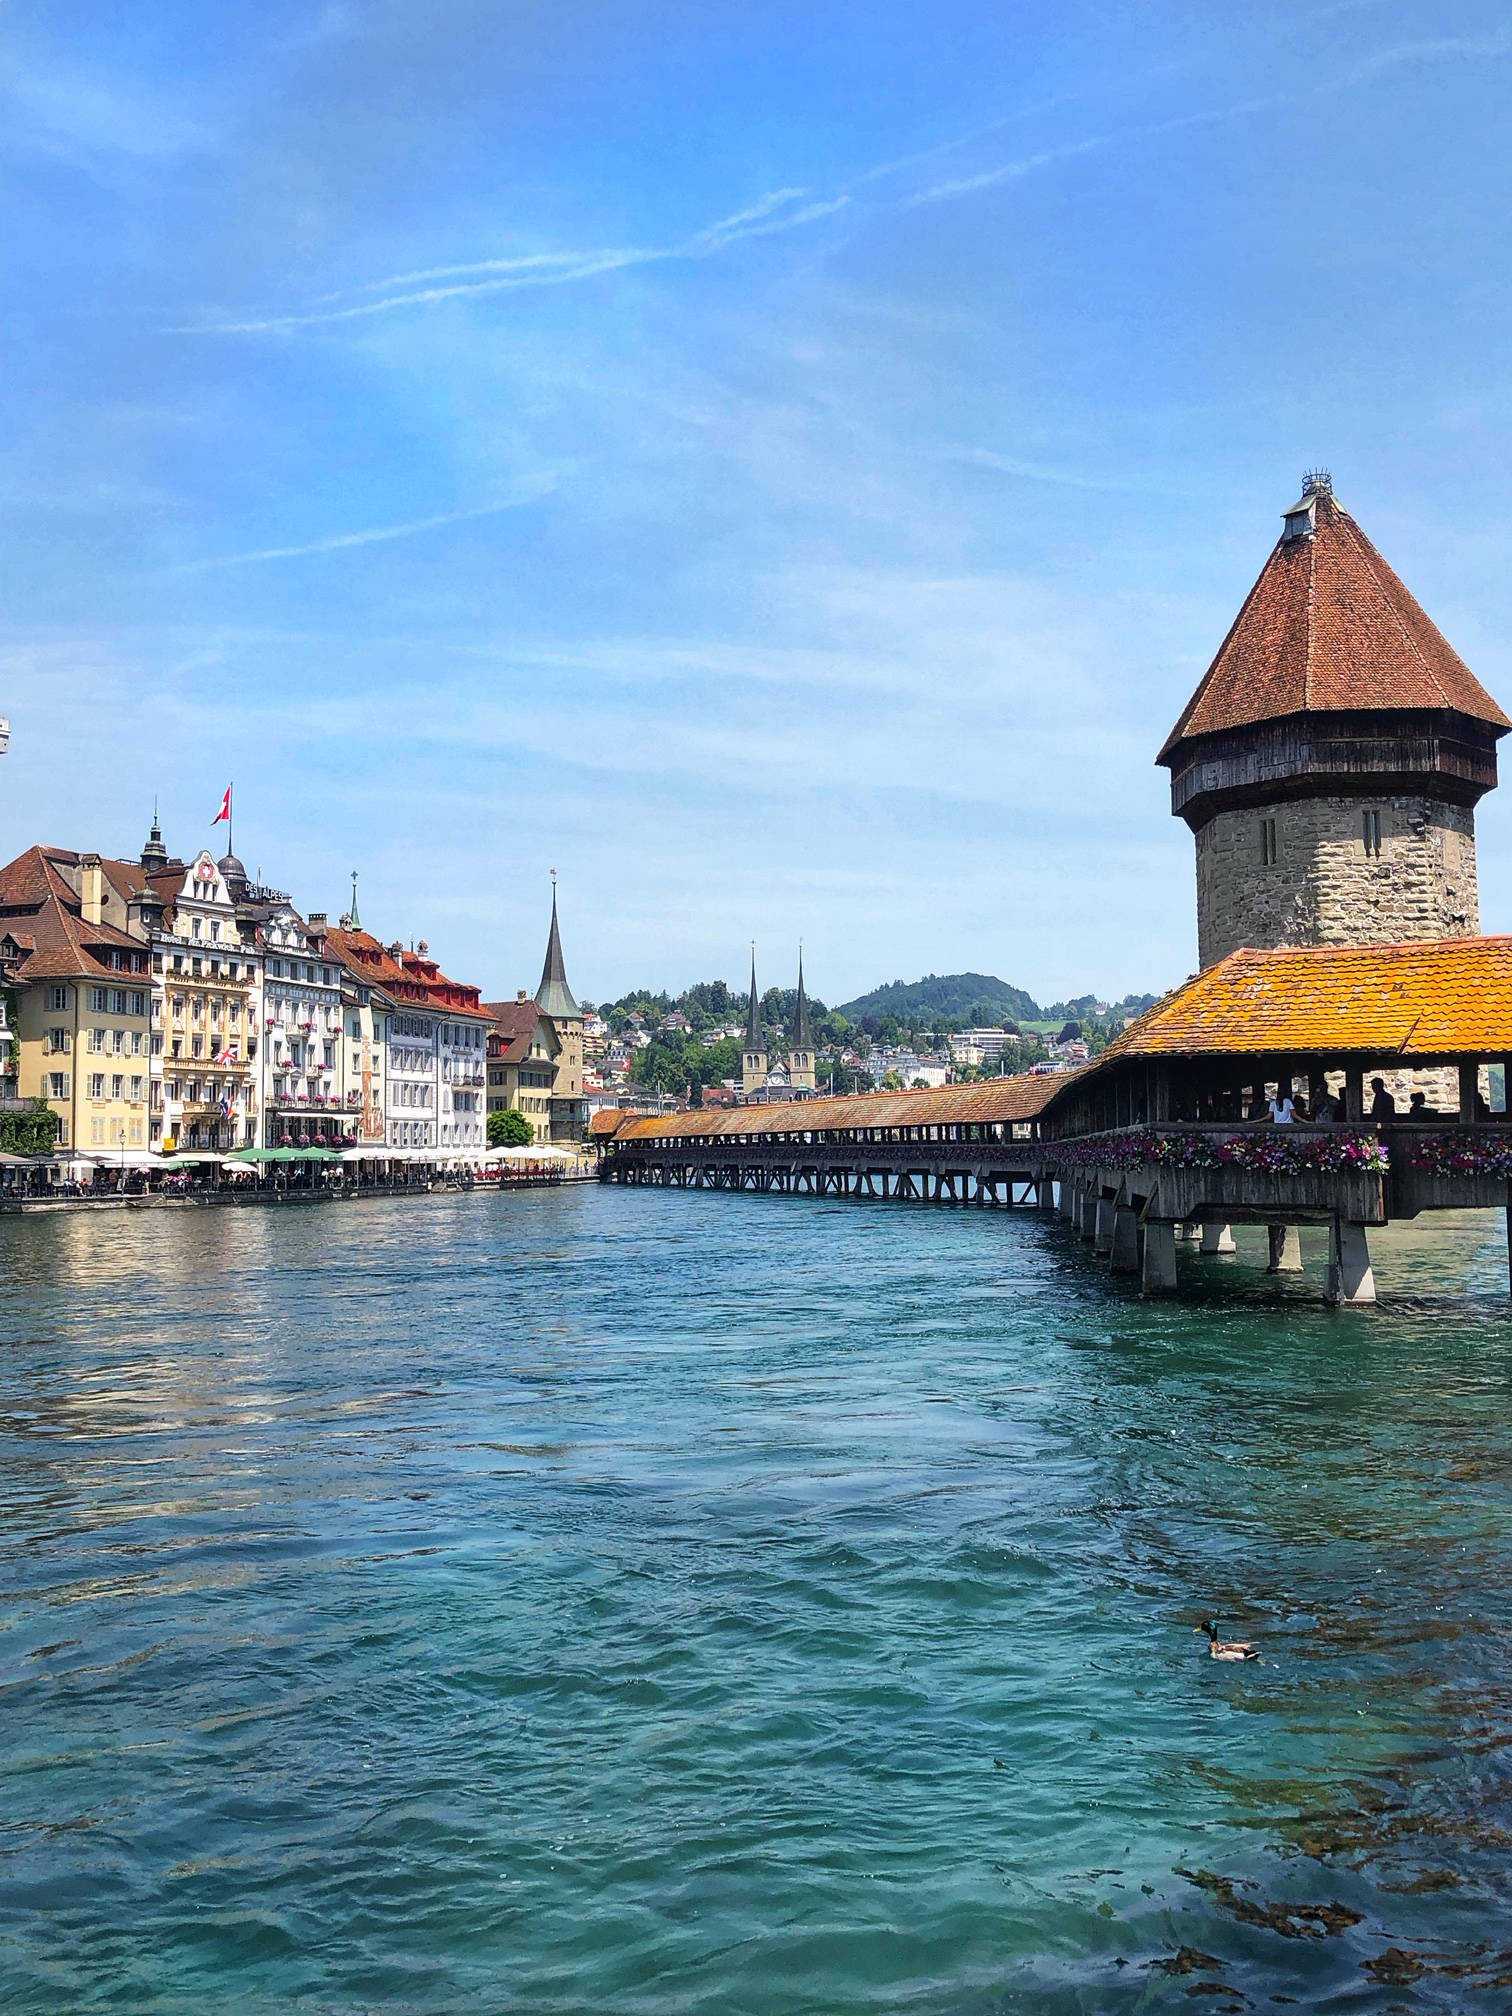 lucerne switzerland, the-alyst.com